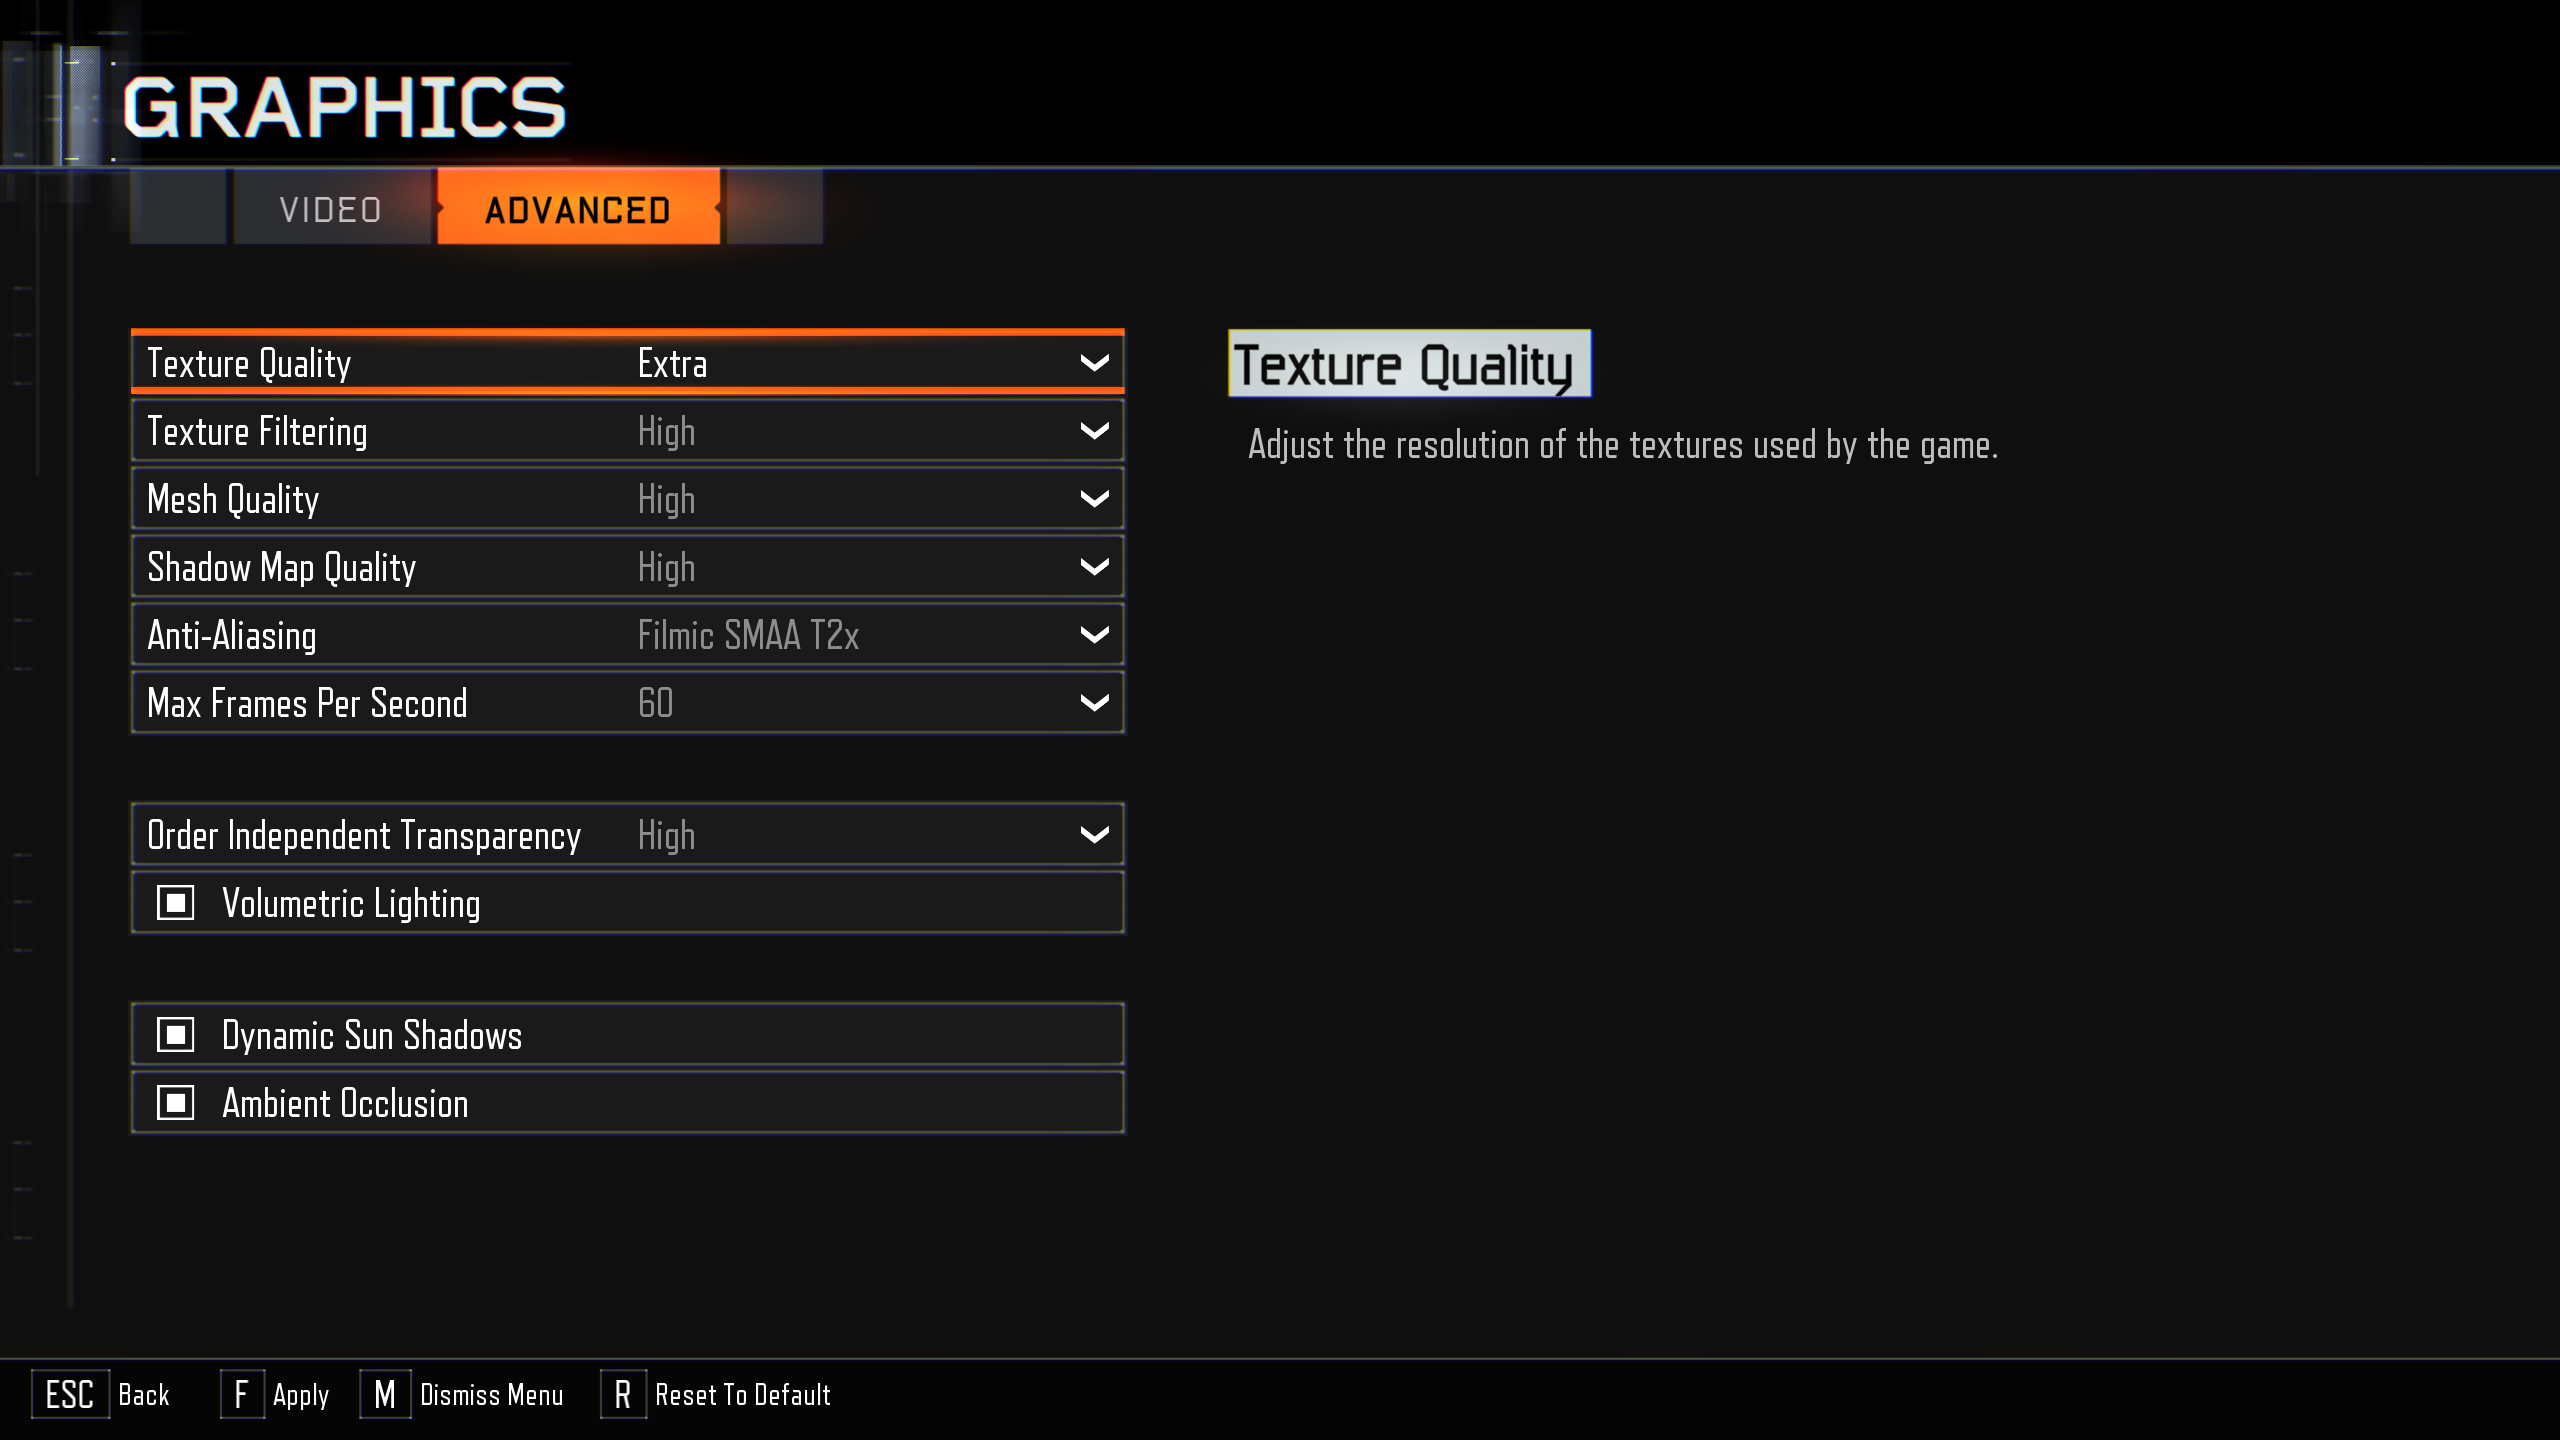 Call-of-Duty-Black-Ops-3-PC-Graphics-Settings-1